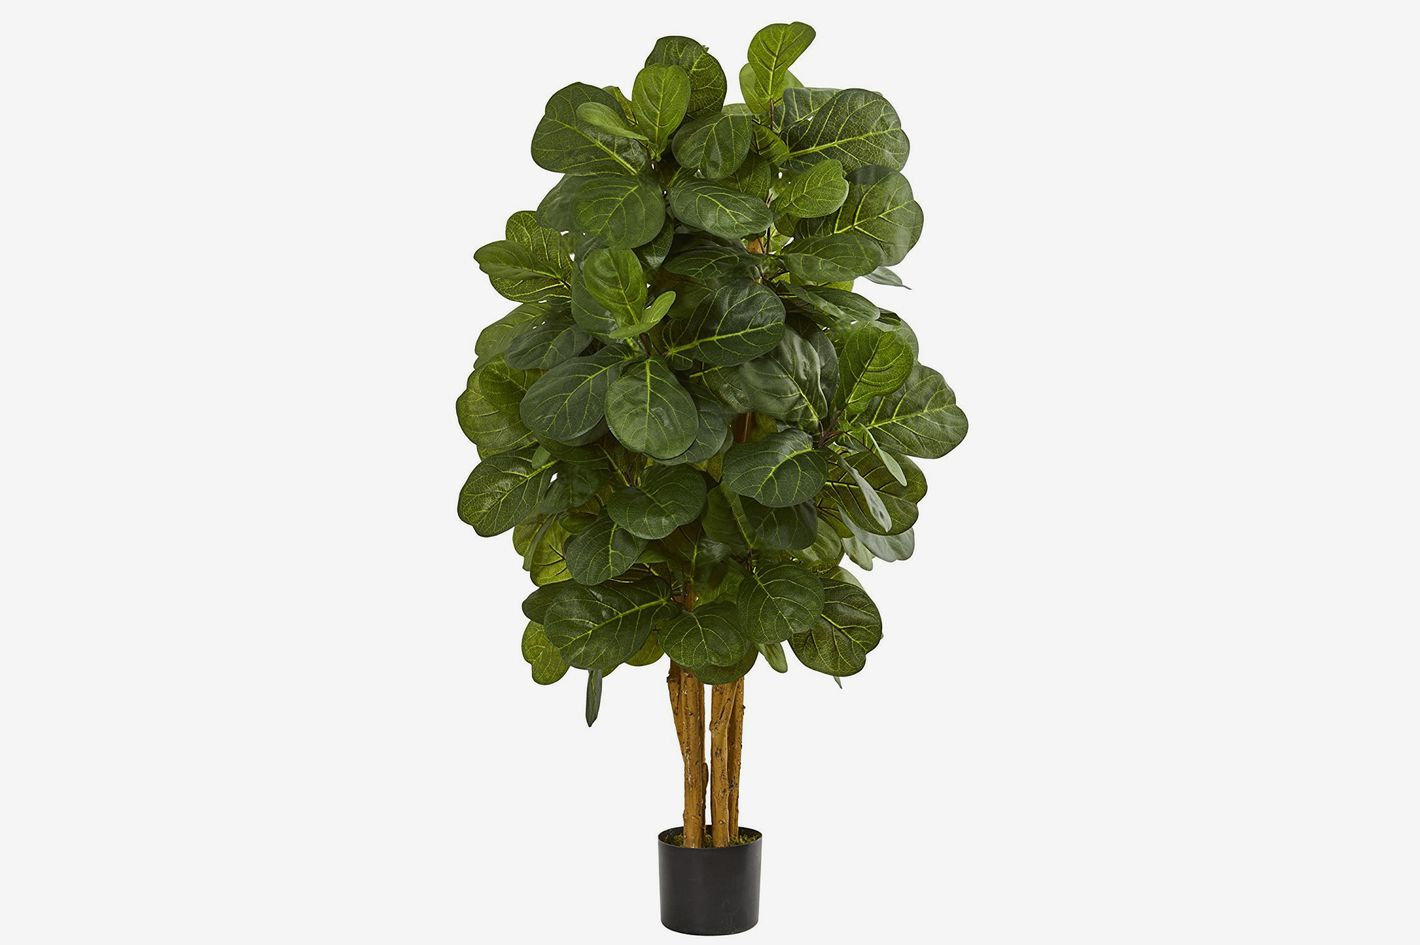 Nearly Natural 4' Fiddle Leaf Fig Artificial Tree